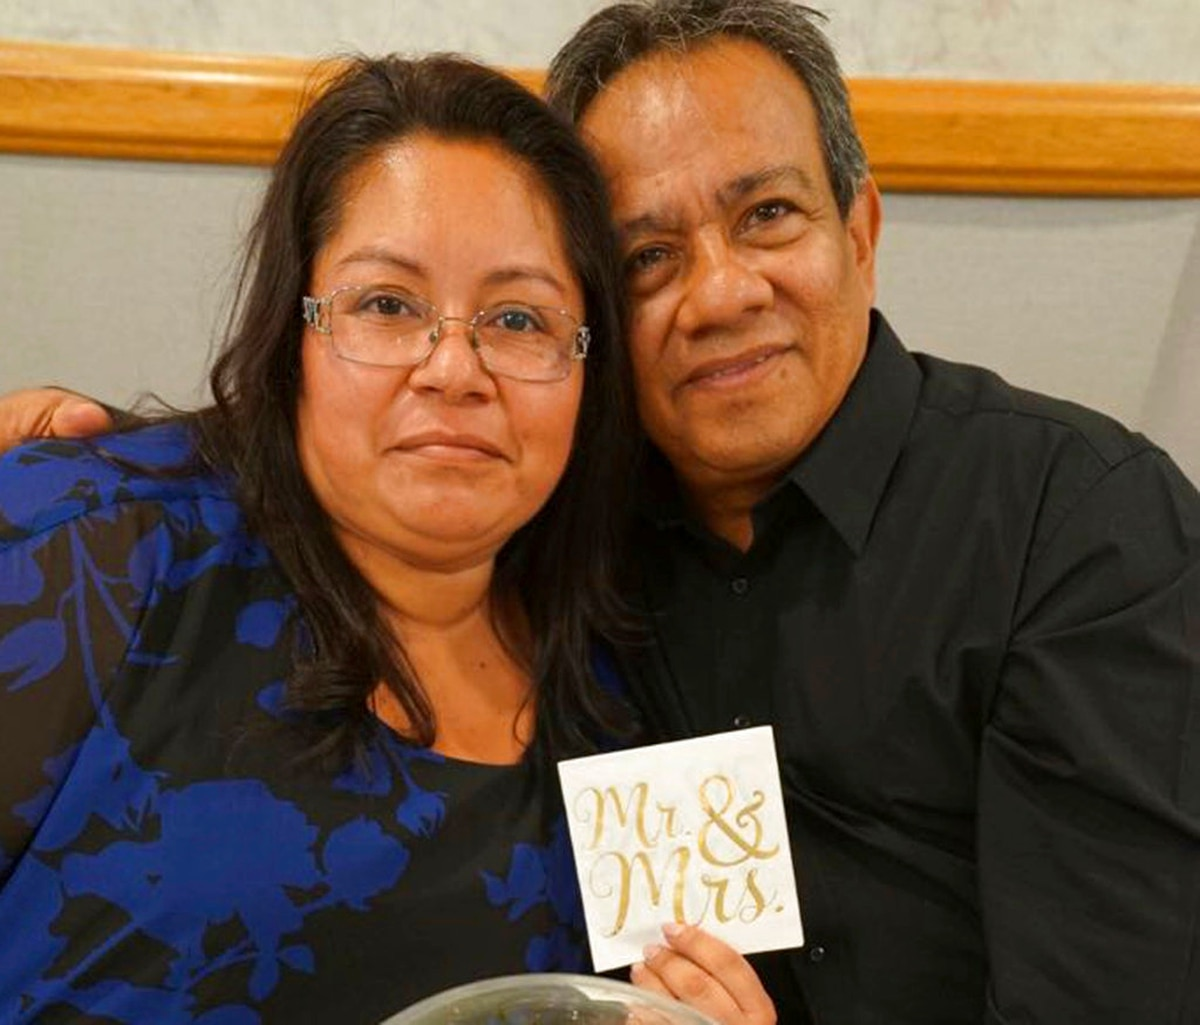 Immigrant couple freed after being detained at Fort Drum